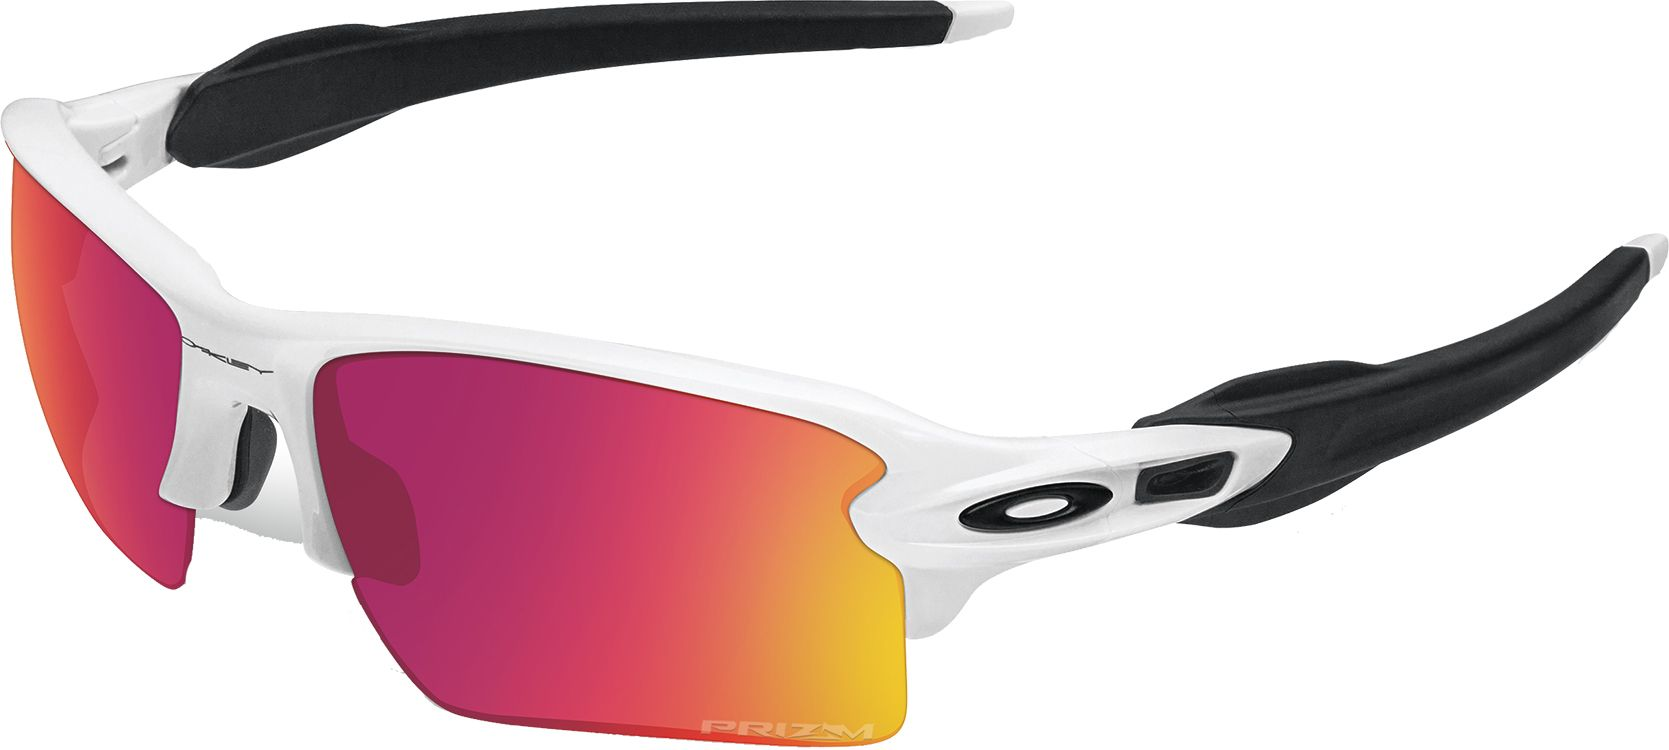 oakley sunglasses near me  product image oakley flak 2.0 xl baseball sunglasses